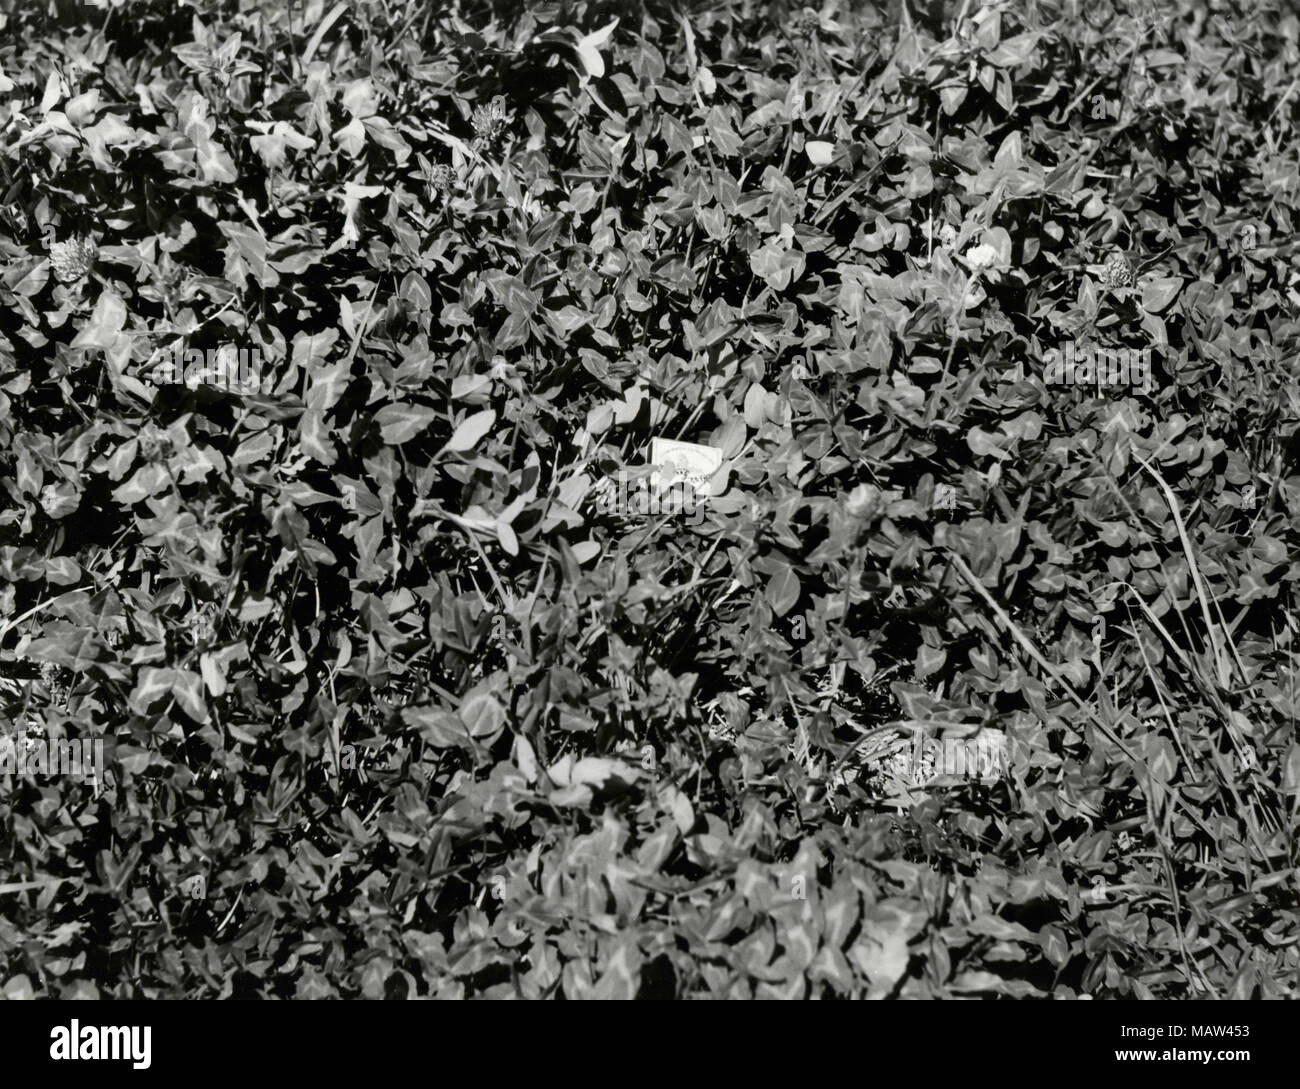 Soil in Kafue River Flats, South Rhodesia 1957 - Stock Image